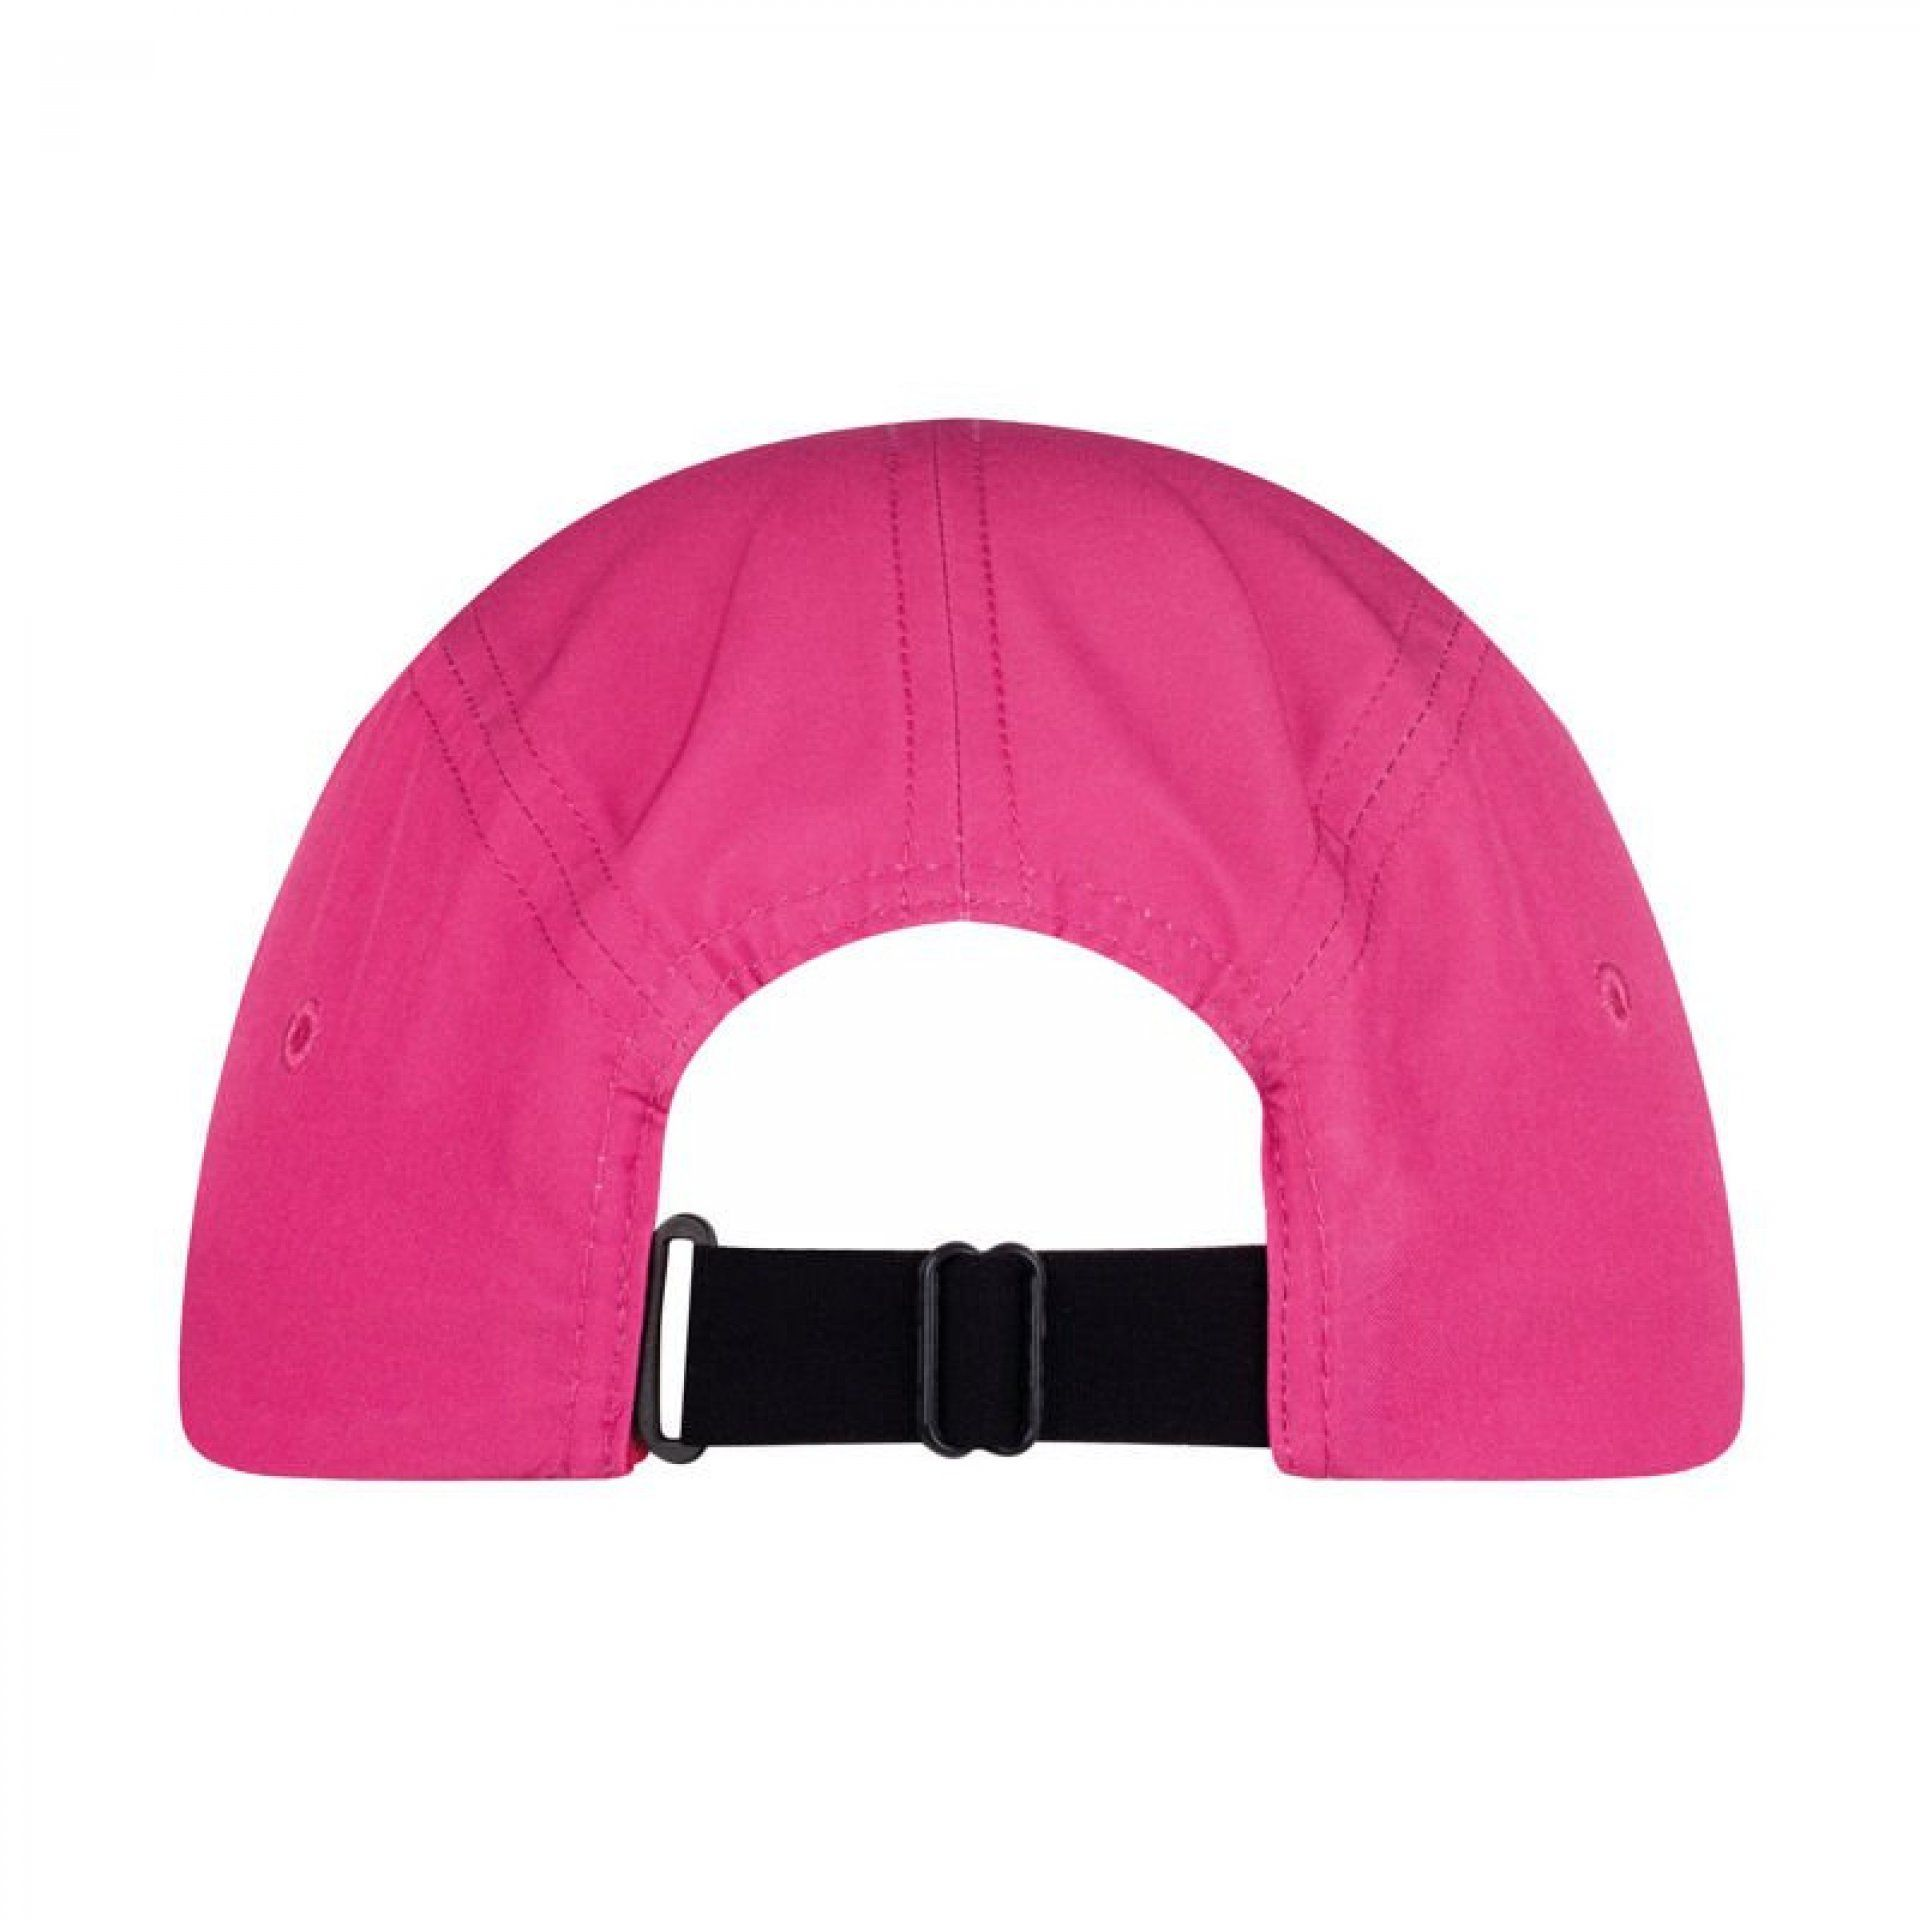 CZAPKA Z DASZKIEM BUFF RUN CAP B-MAGIC PINK TYŁ